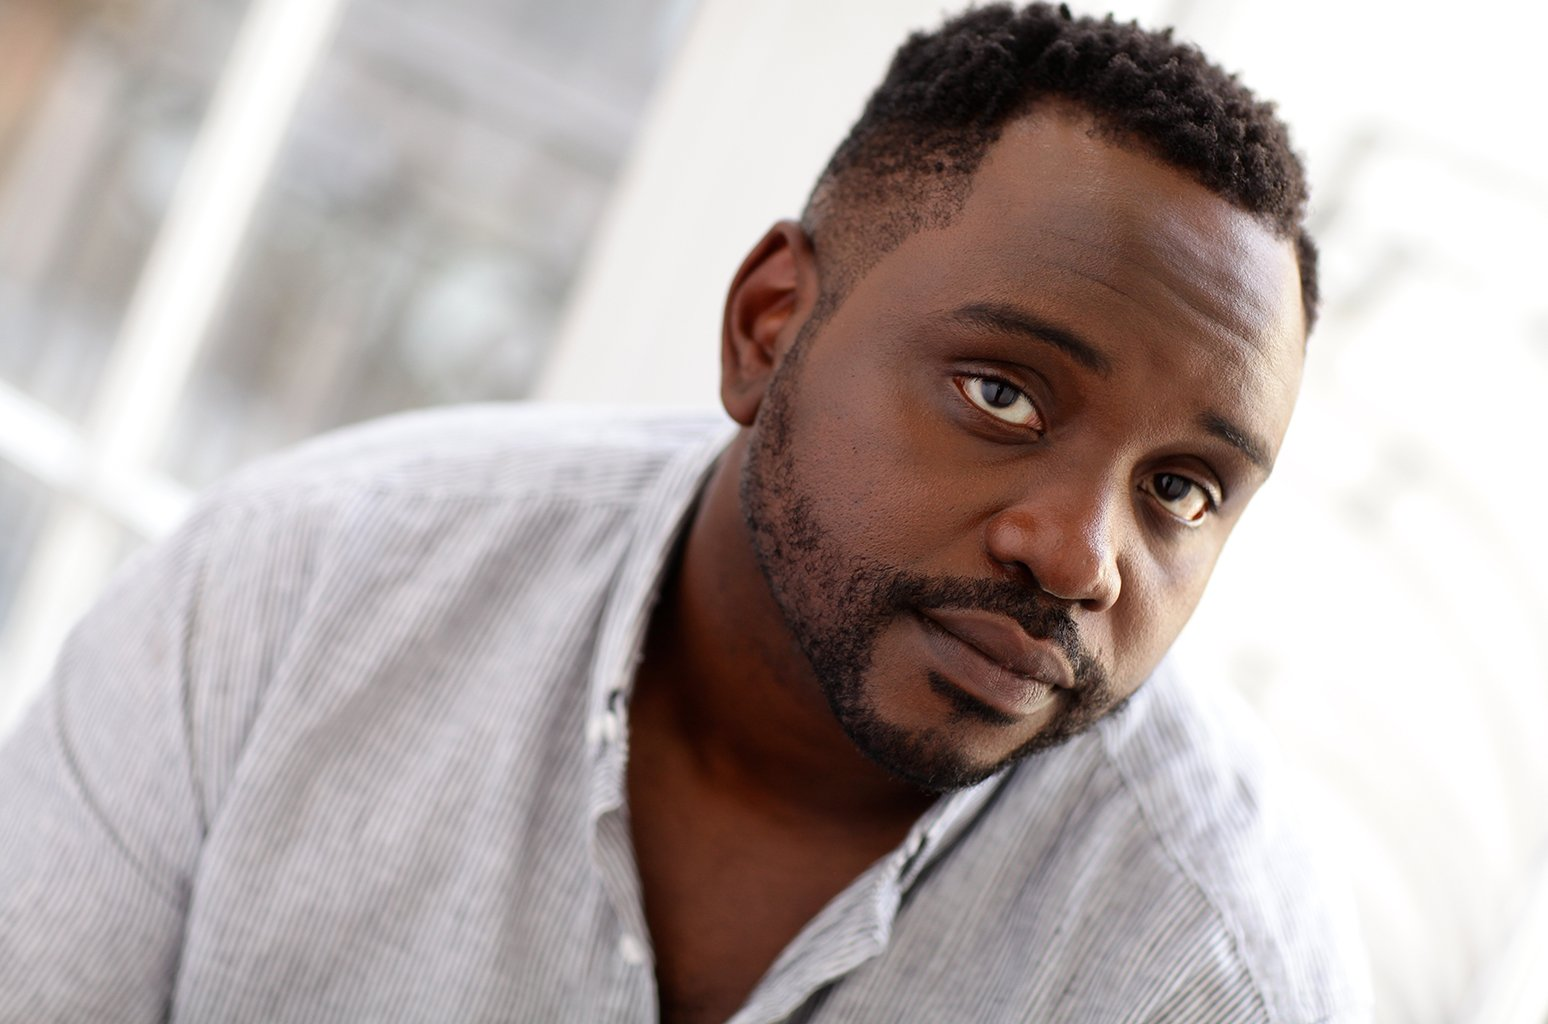 'Atlanta' Actor Brian Tyree Henry Is A Morehouse Man And Yale Graduate